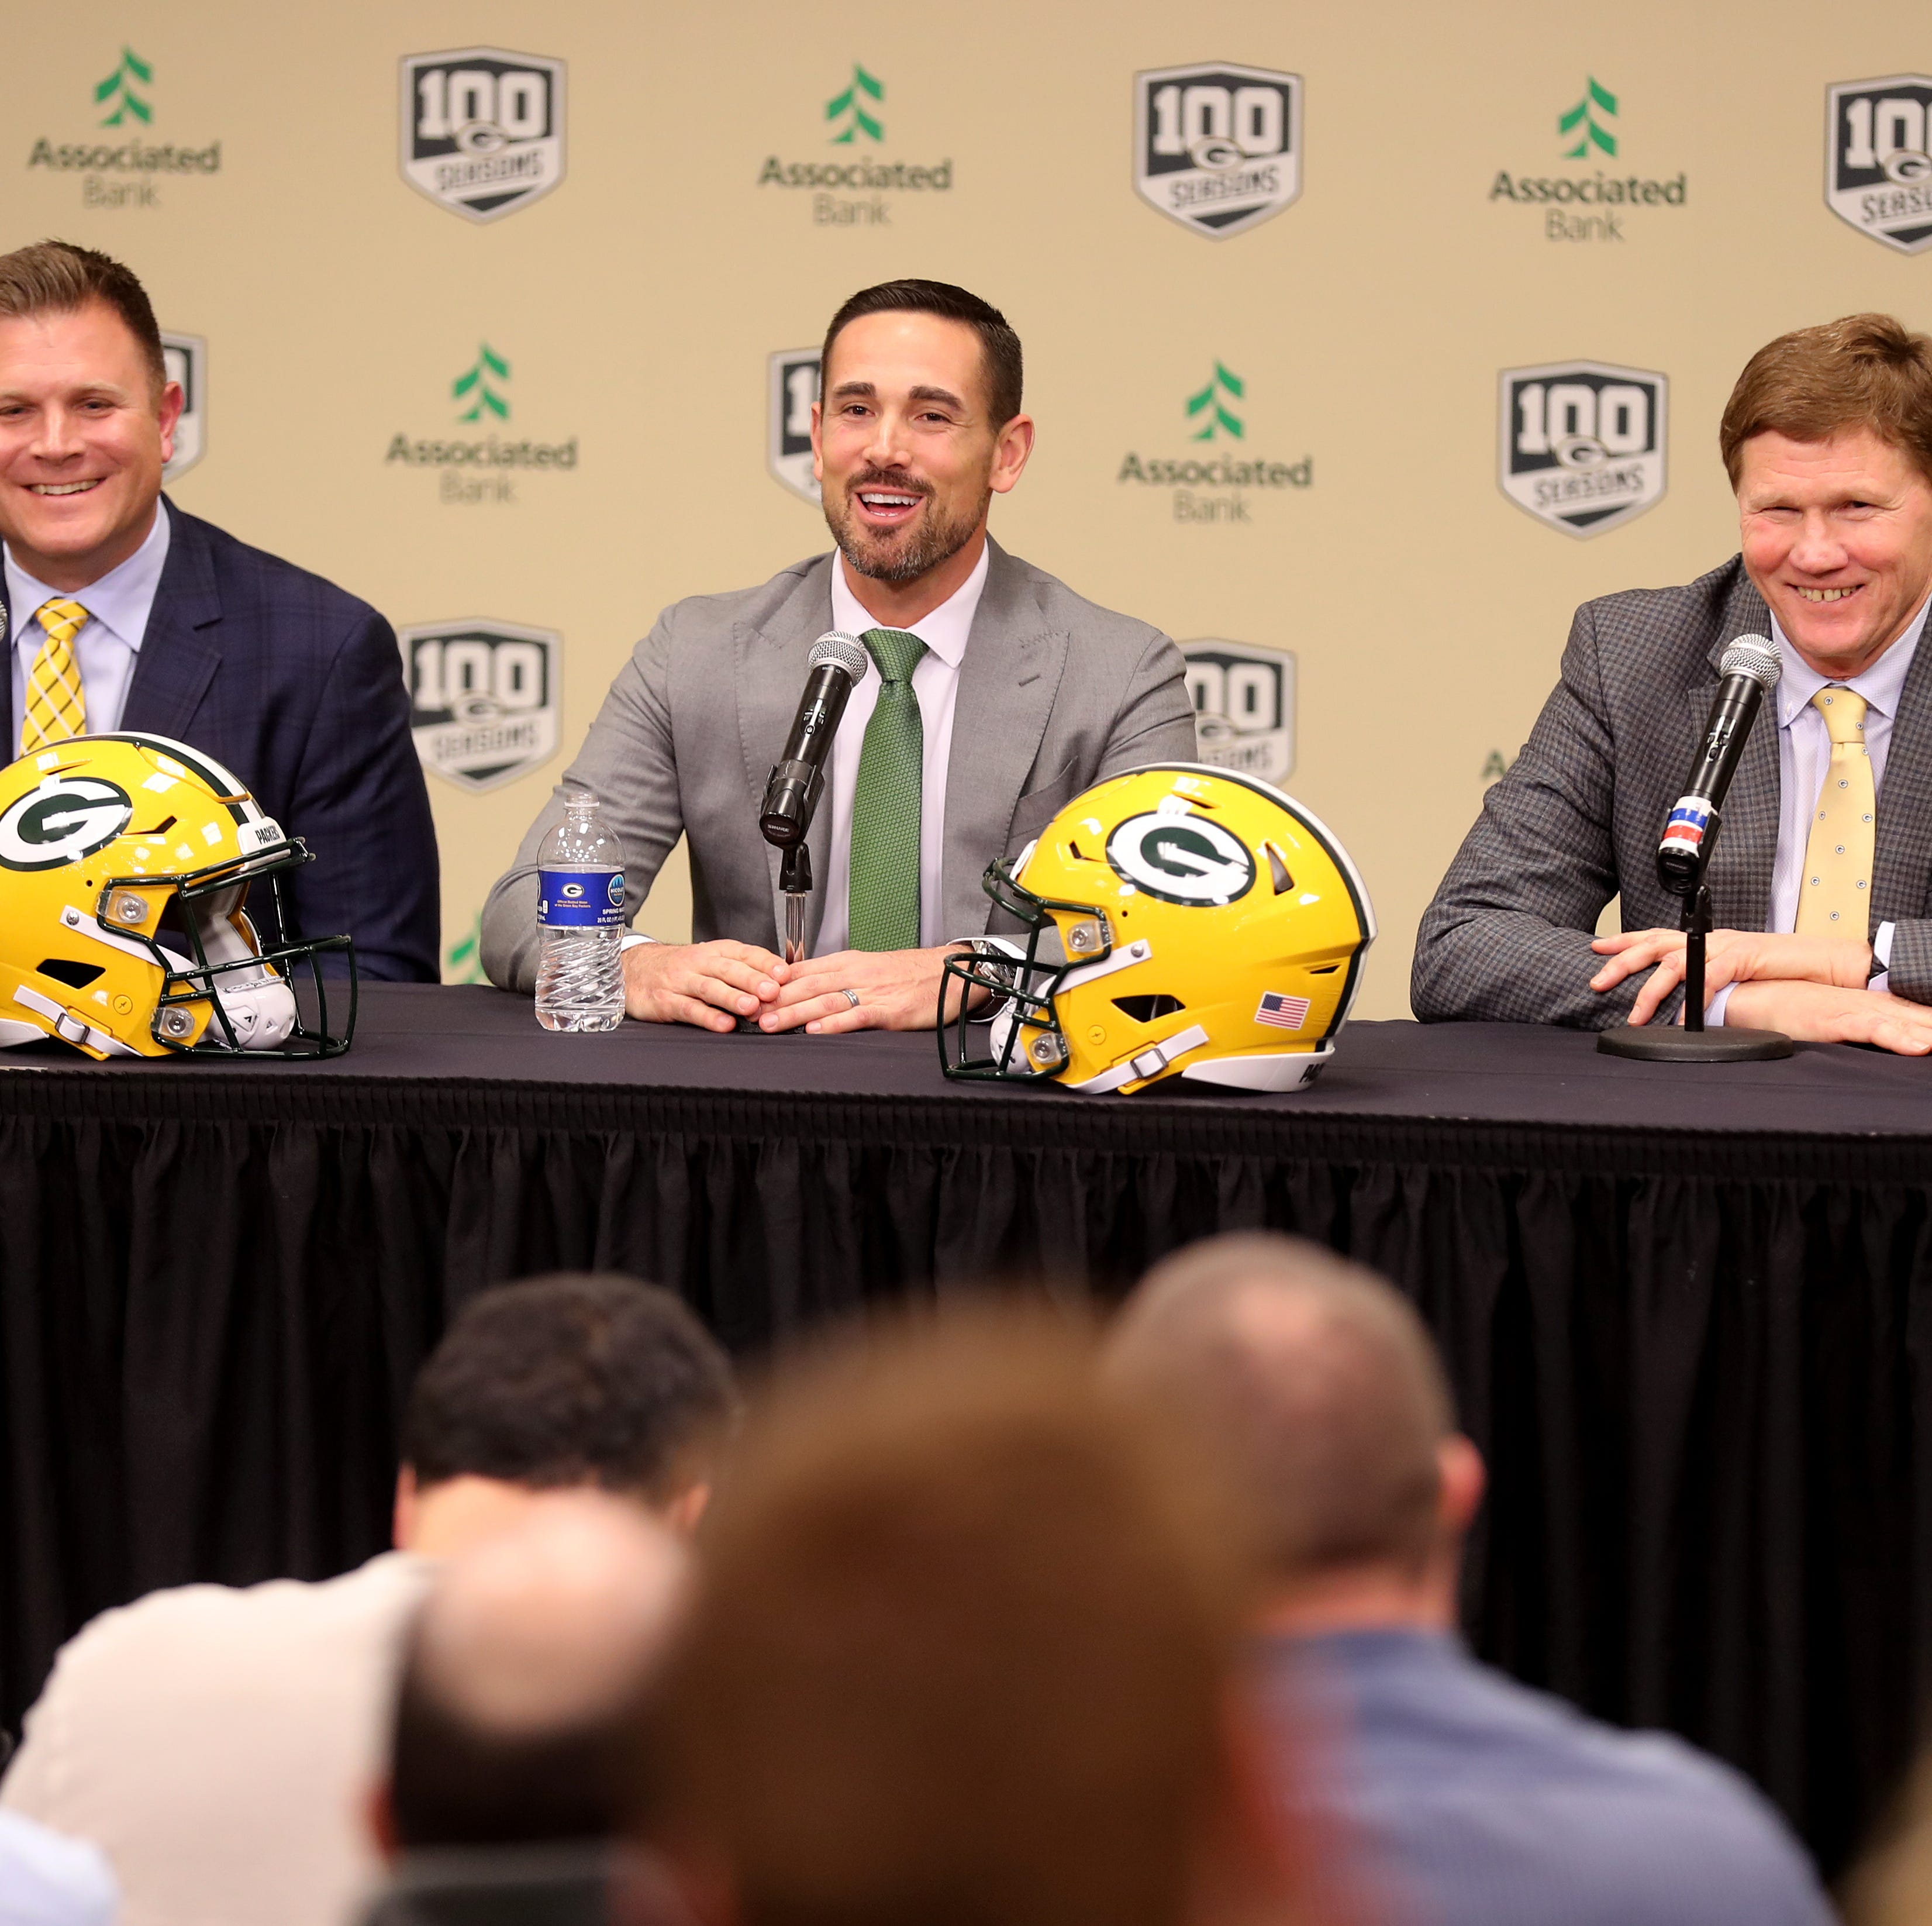 Silverstein: Critics of Mark Murphy's new Packers management structure say it could lead to dysfunction